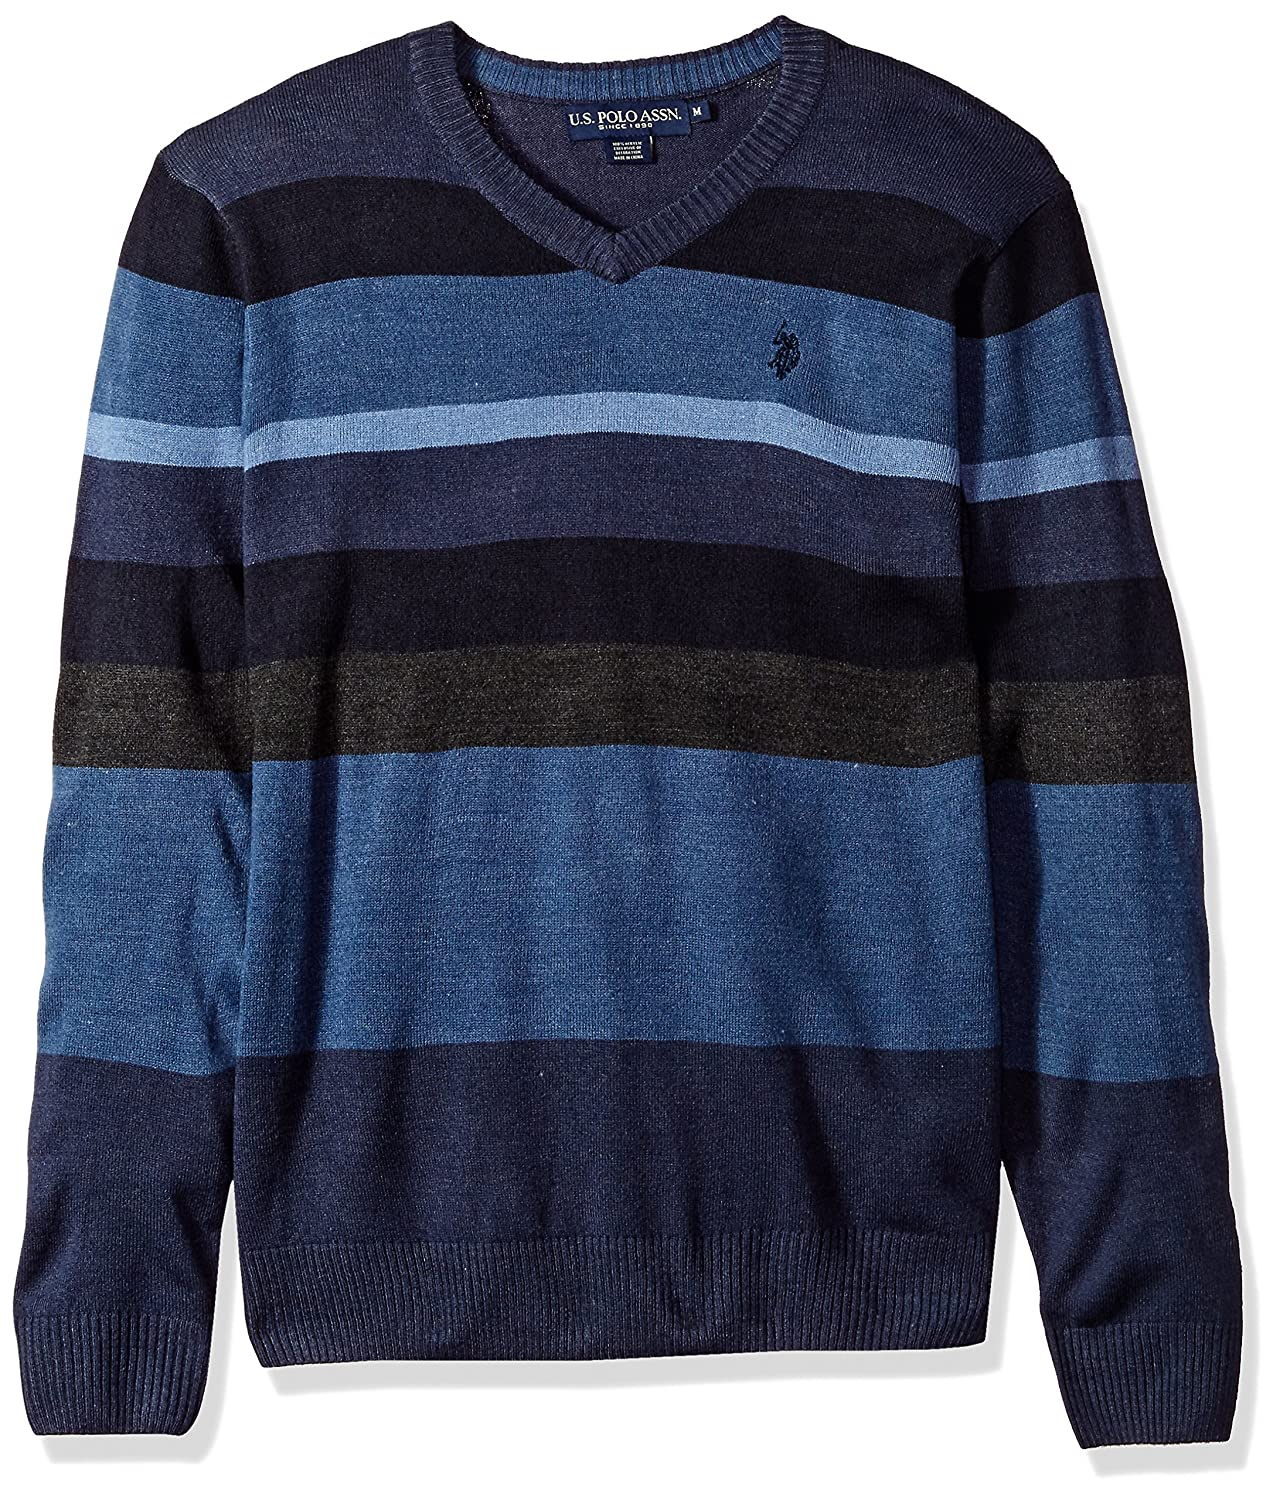 U.S. Polo Assn. Men's Multi Stripe V-Neck Sweater, ACUF7S5765